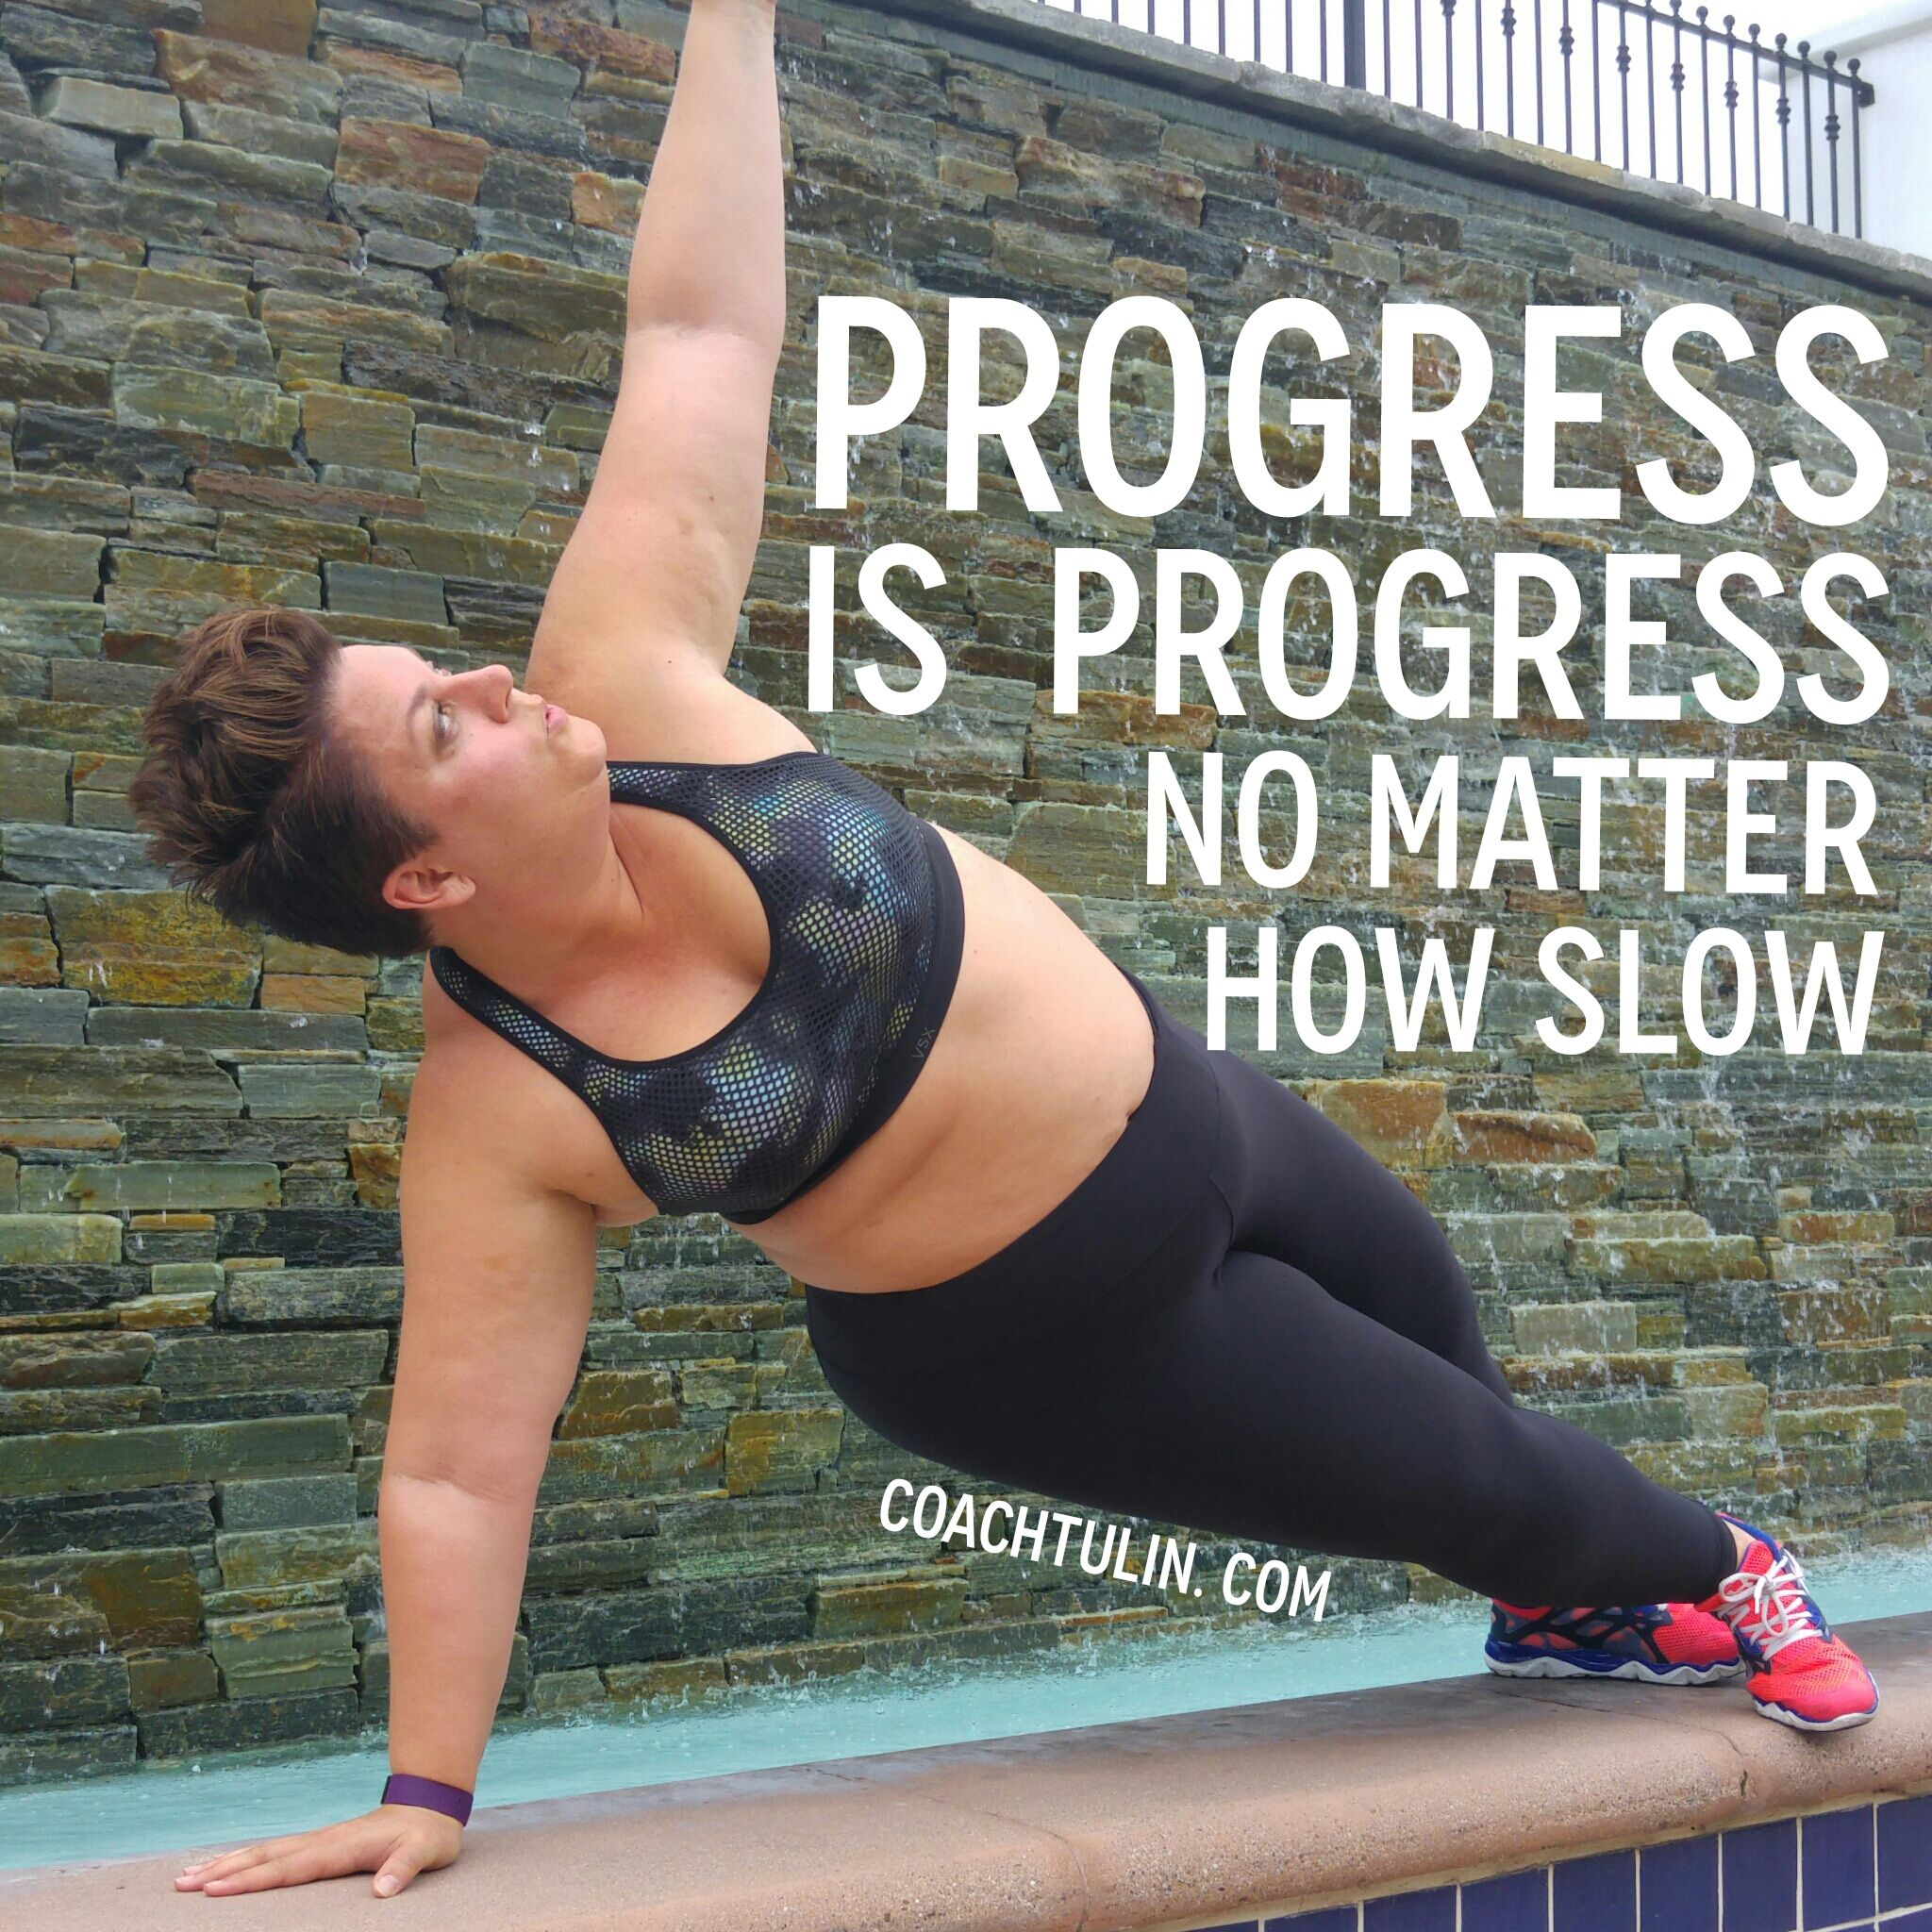 Pin By Shawn Thompson On Fitness Quotes: Pin By Coach Tulin On Plus Size Fitness Motivation